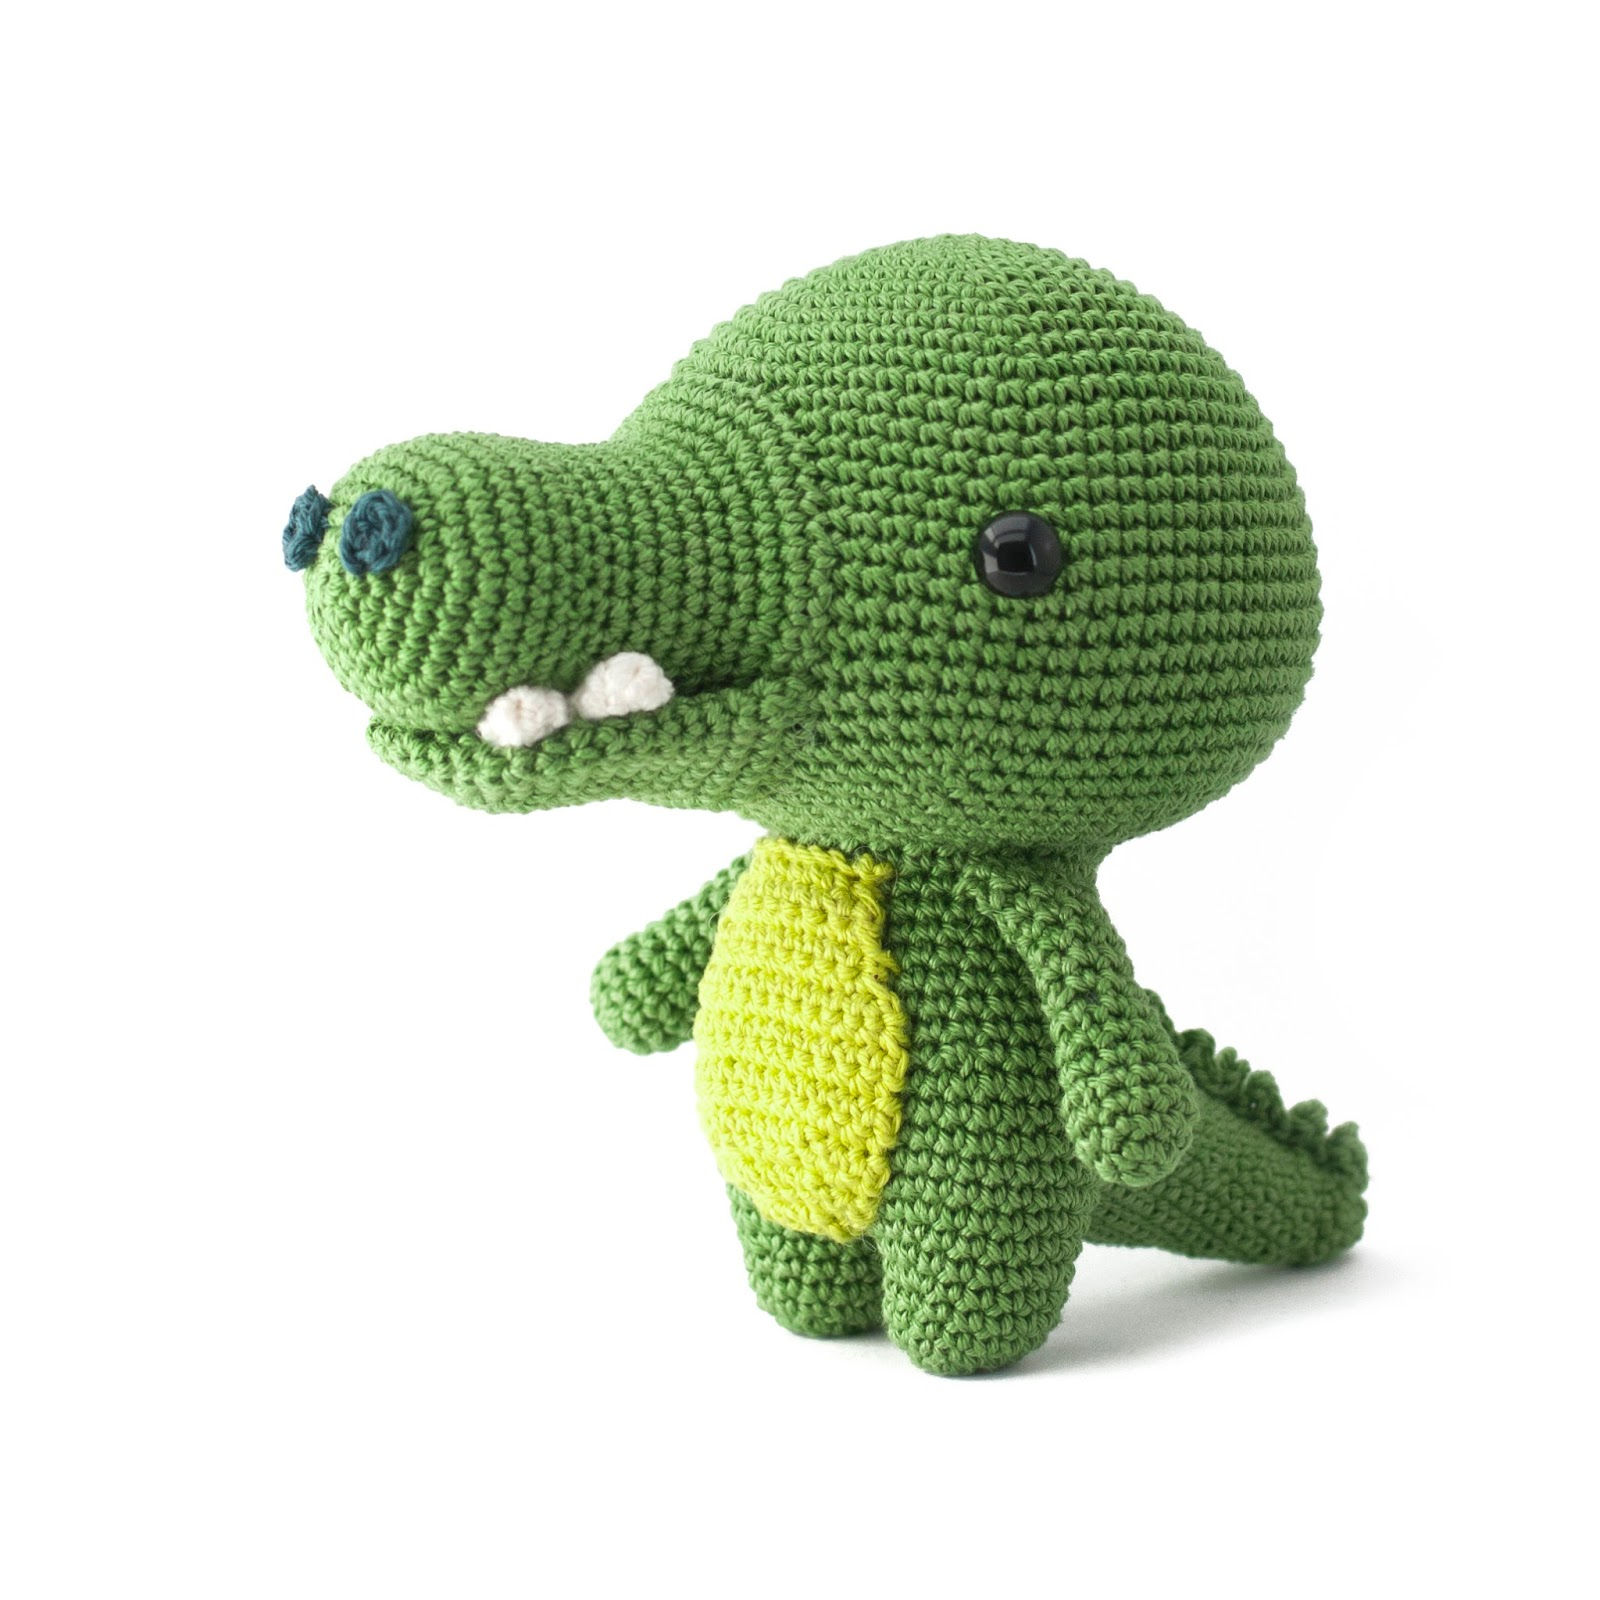 Amigurumi Alligator Pattern : Toy Patterns by DIY Fluffies : Toto the Crocodile ...